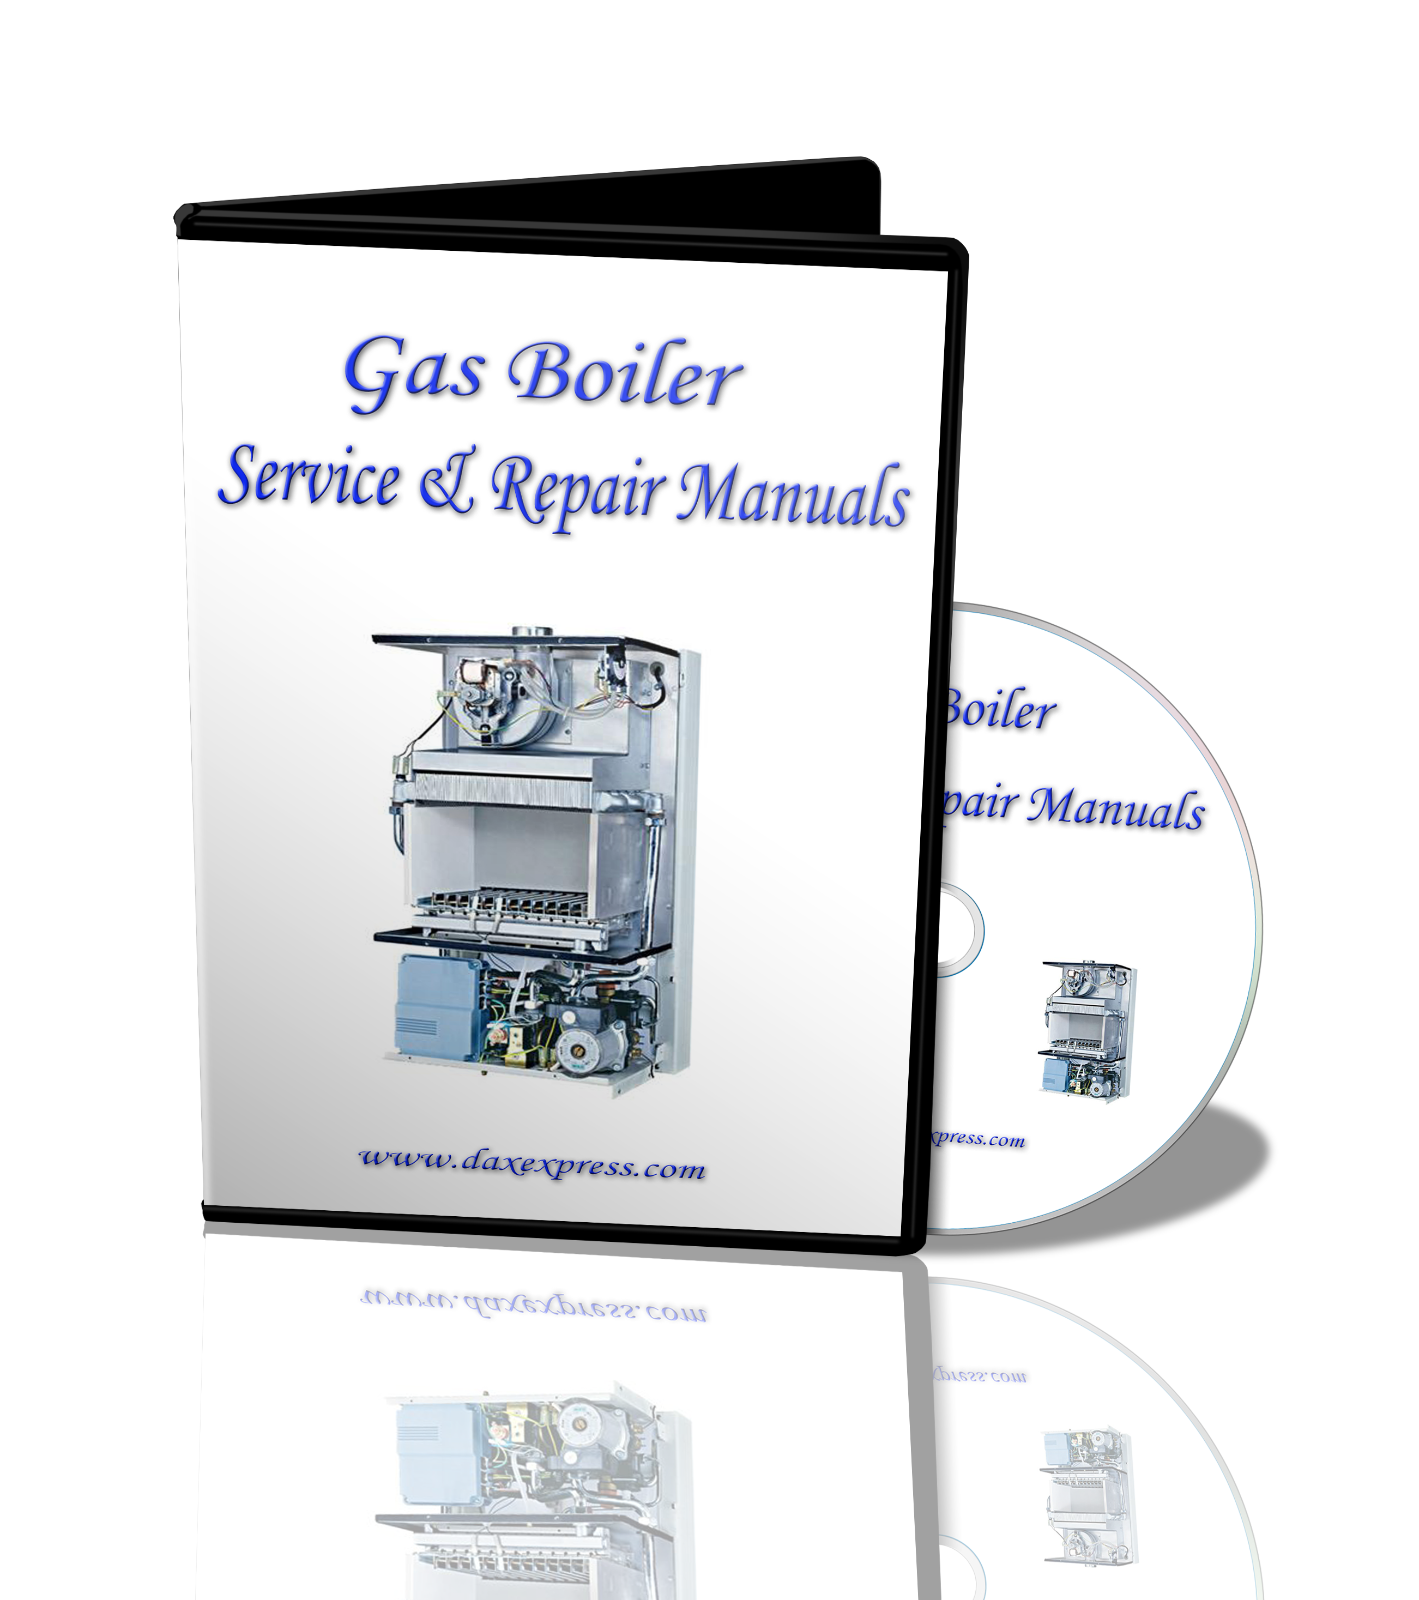 Boilers Wiring Diagrams And Manuals